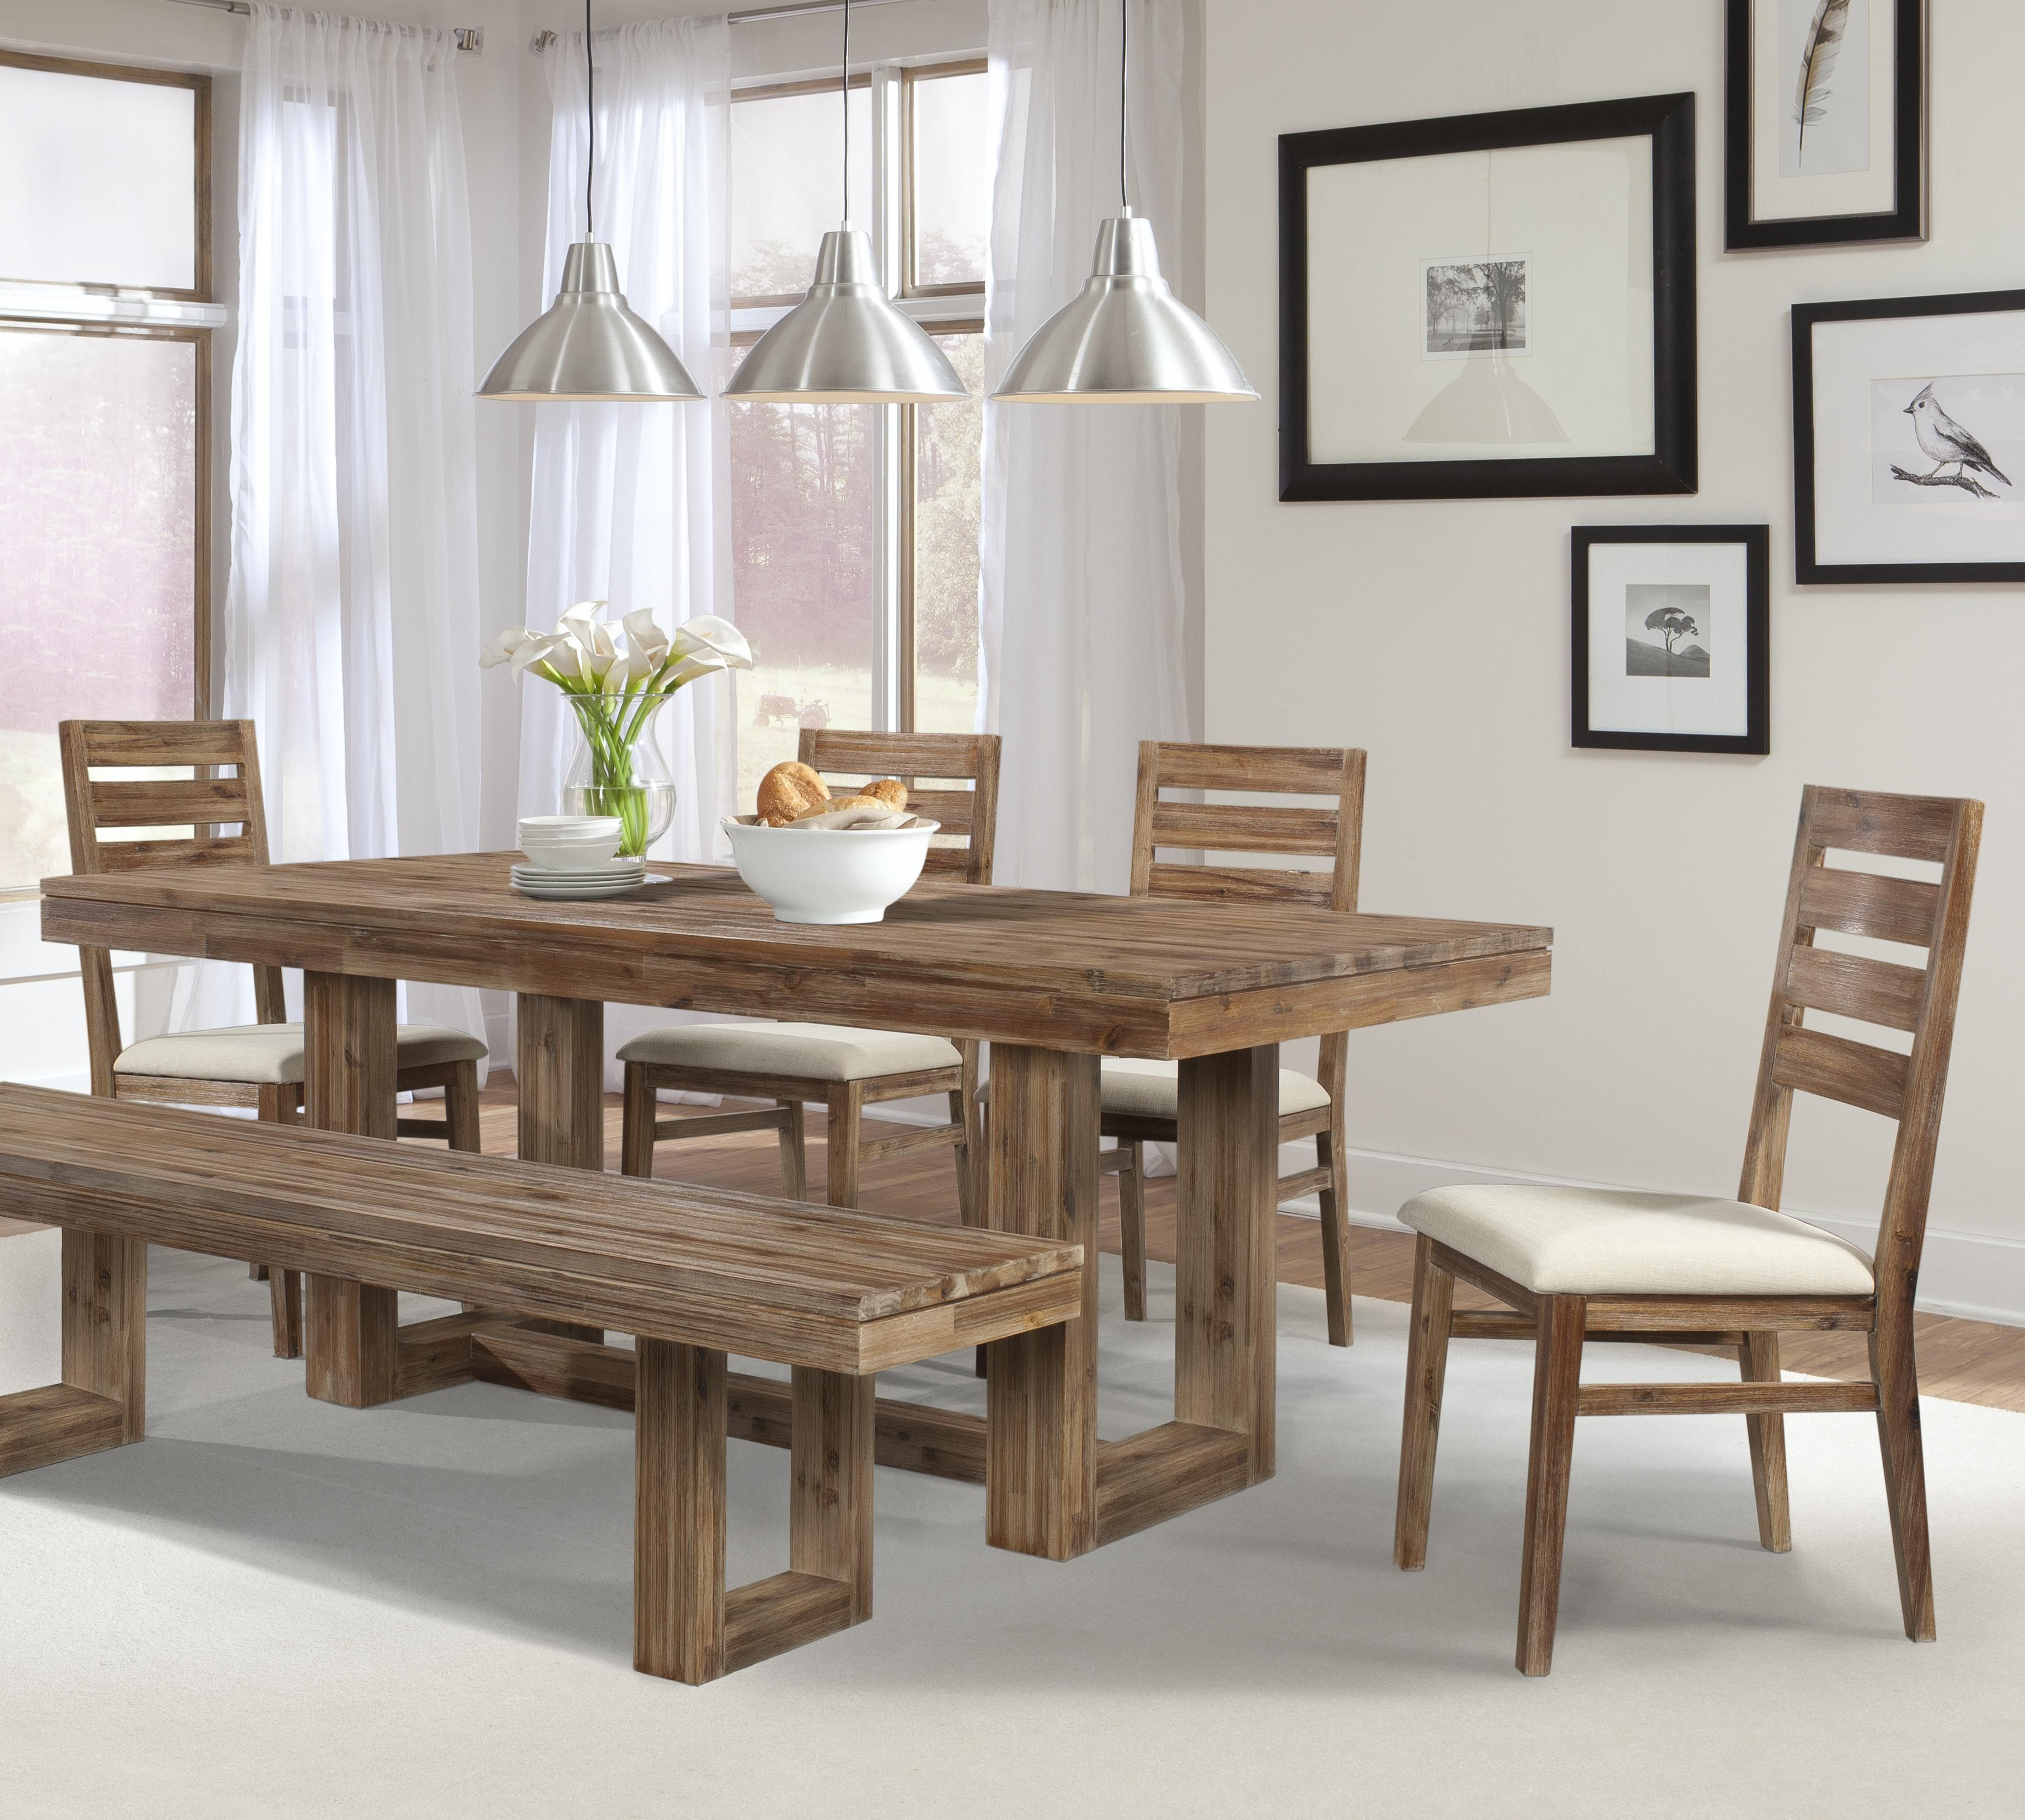 Delightful Shop For The Cresent Fine Furniture Waverly Dining Room Group At Belfort  Furniture   Your Washington DC, Northern Virginia, Maryland And Fairfax VA  ...